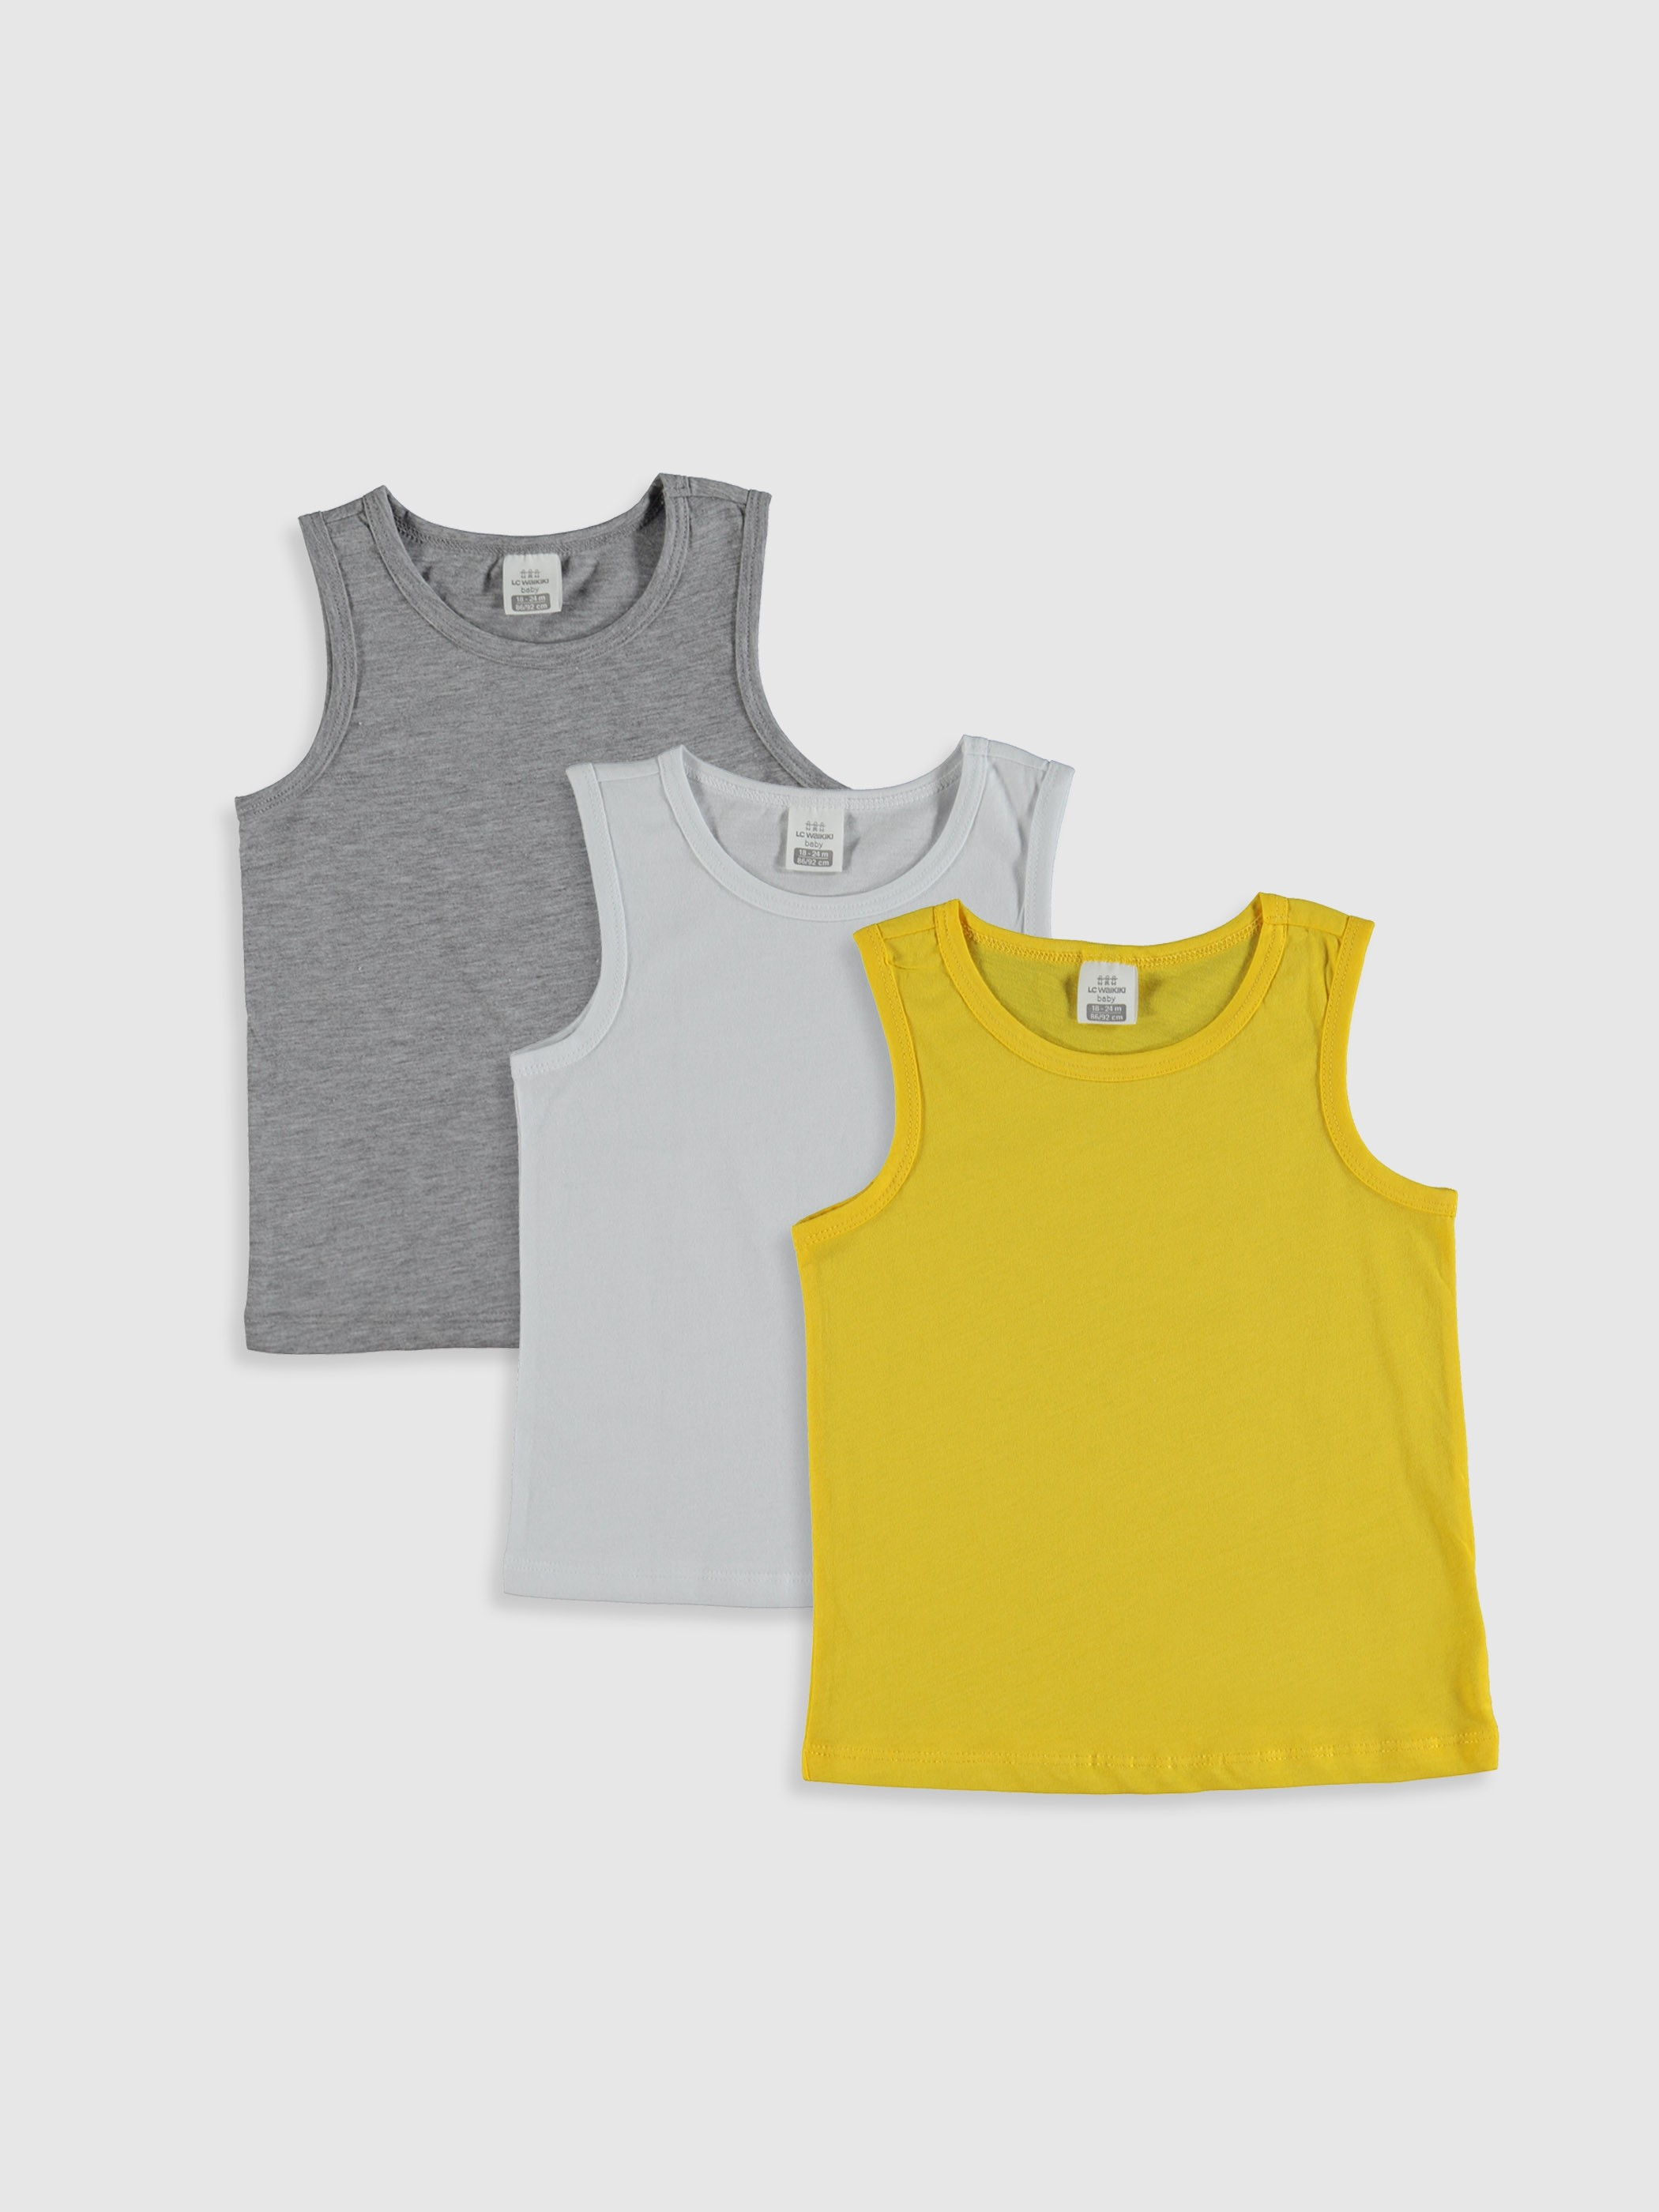 YELLOW - Athletes 3x Cotton Baby Boy - 0SY826Z1